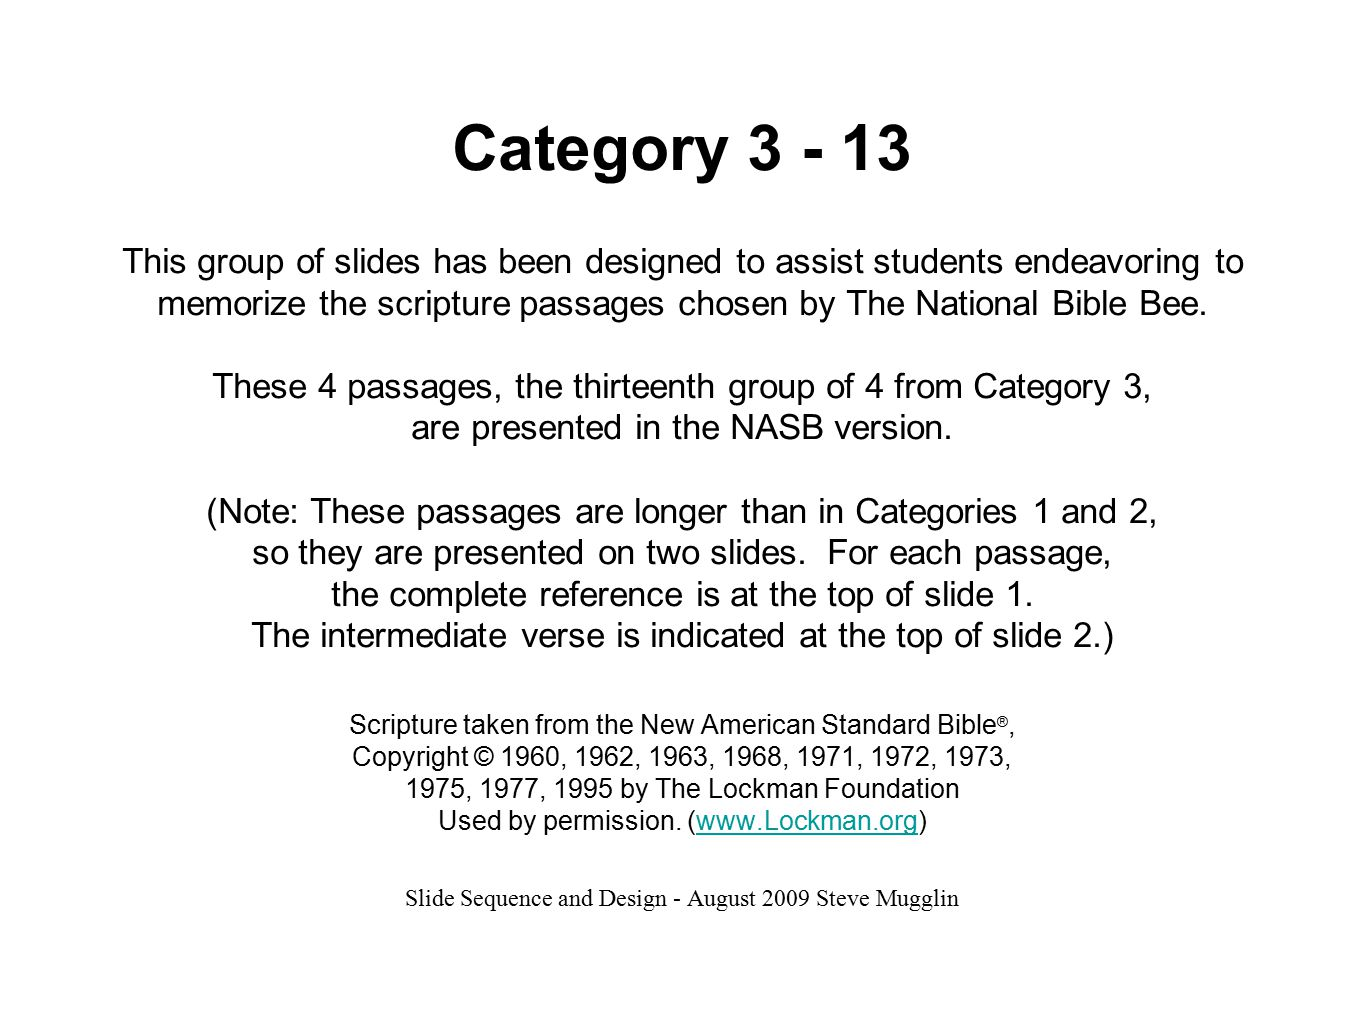 Category 3 - 13 This group of slides has been designed to assist students endeavoring to memorize the scripture passages chosen by The National Bible Bee.